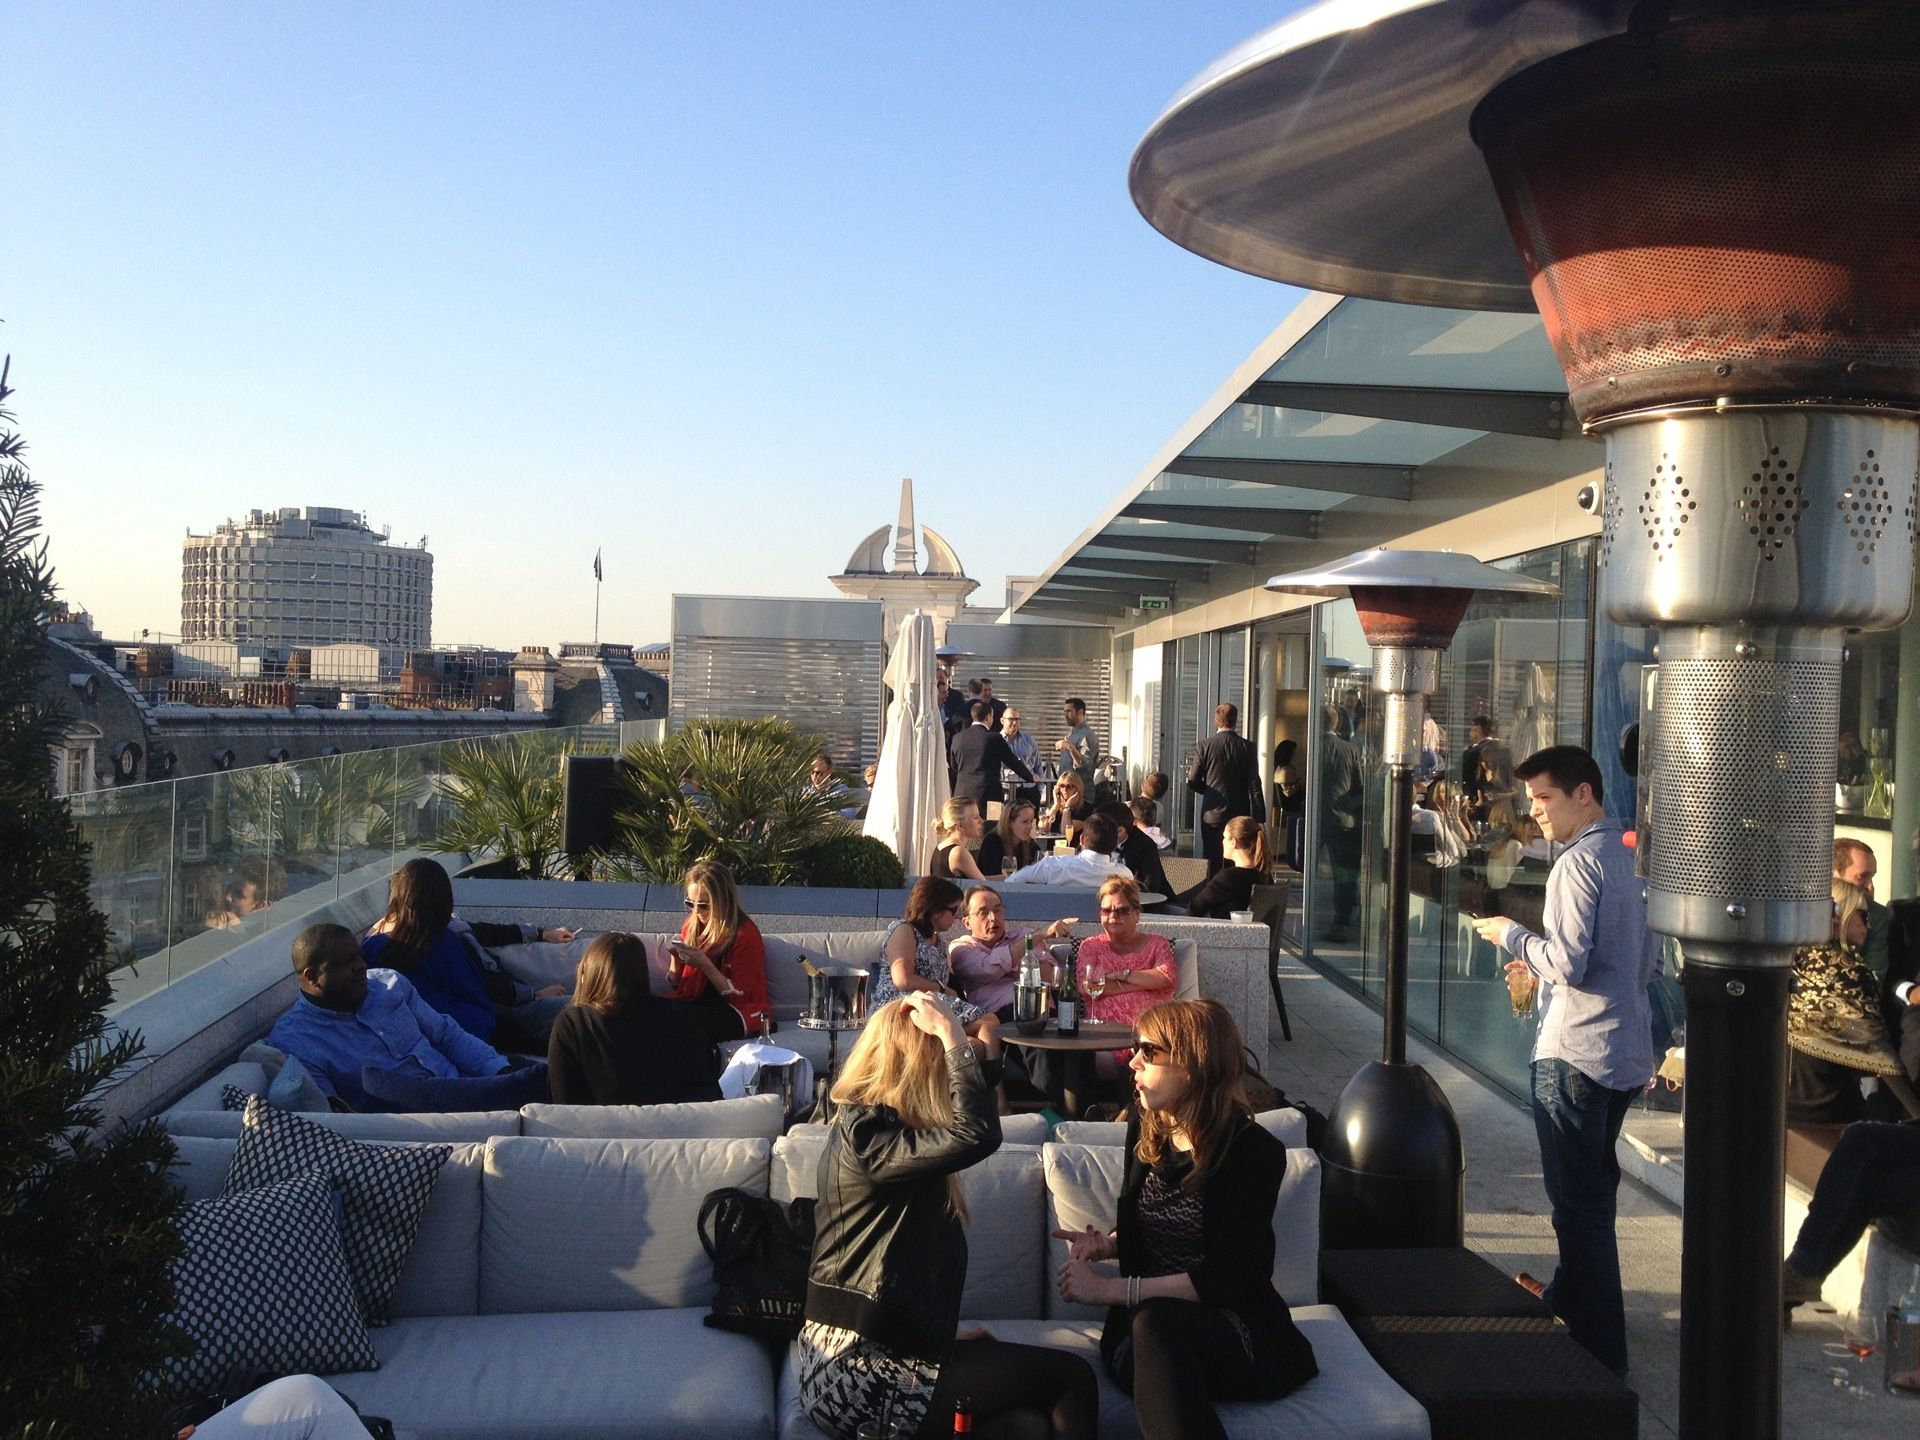 Radio Rooftop Bar And Restaurant Radio Rooftop Bar London Rooftop Bar Covent Garden Bars